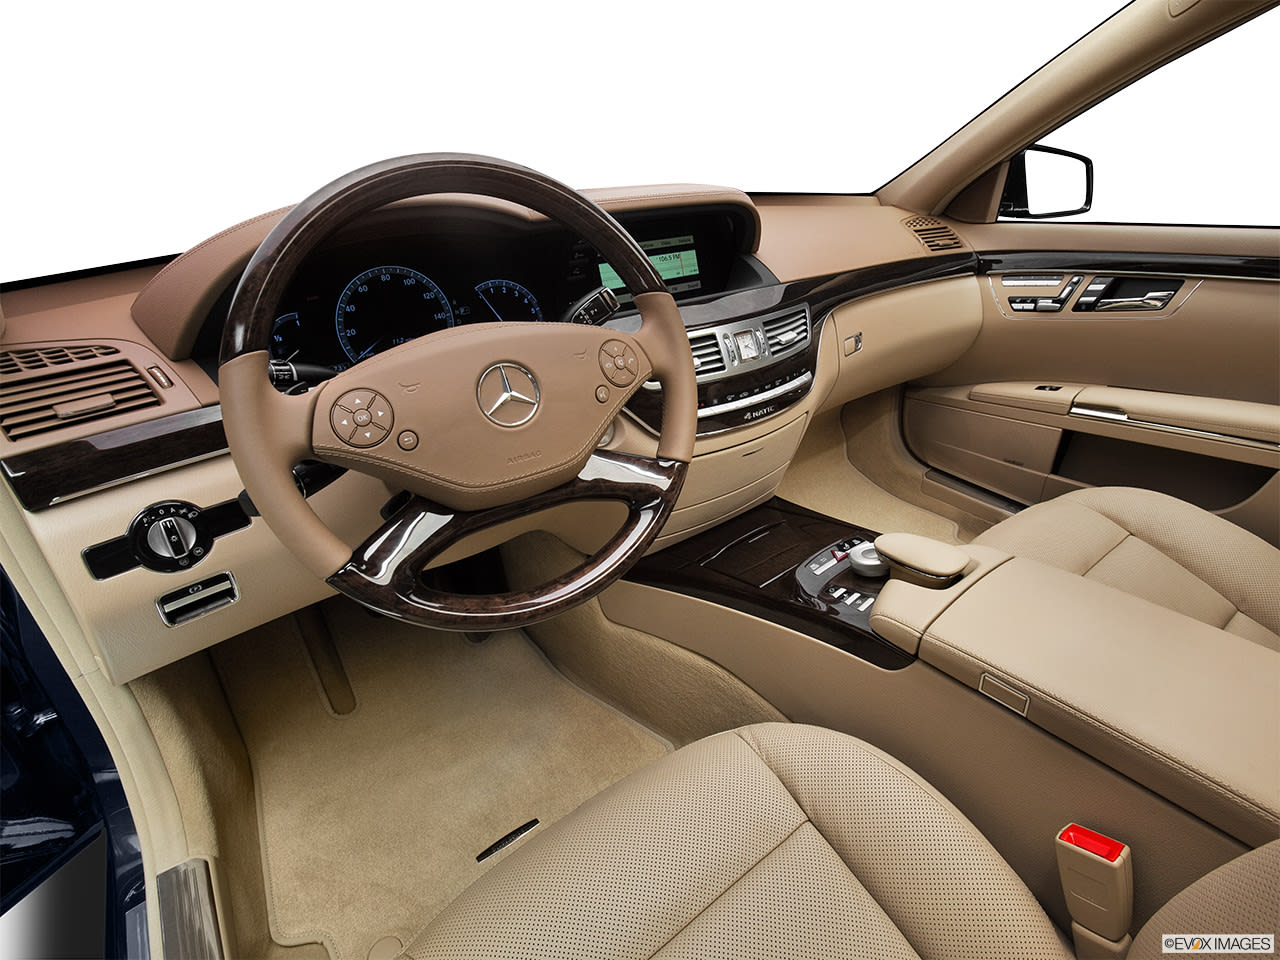 mercedes benze s350 bluetec 2012 interior